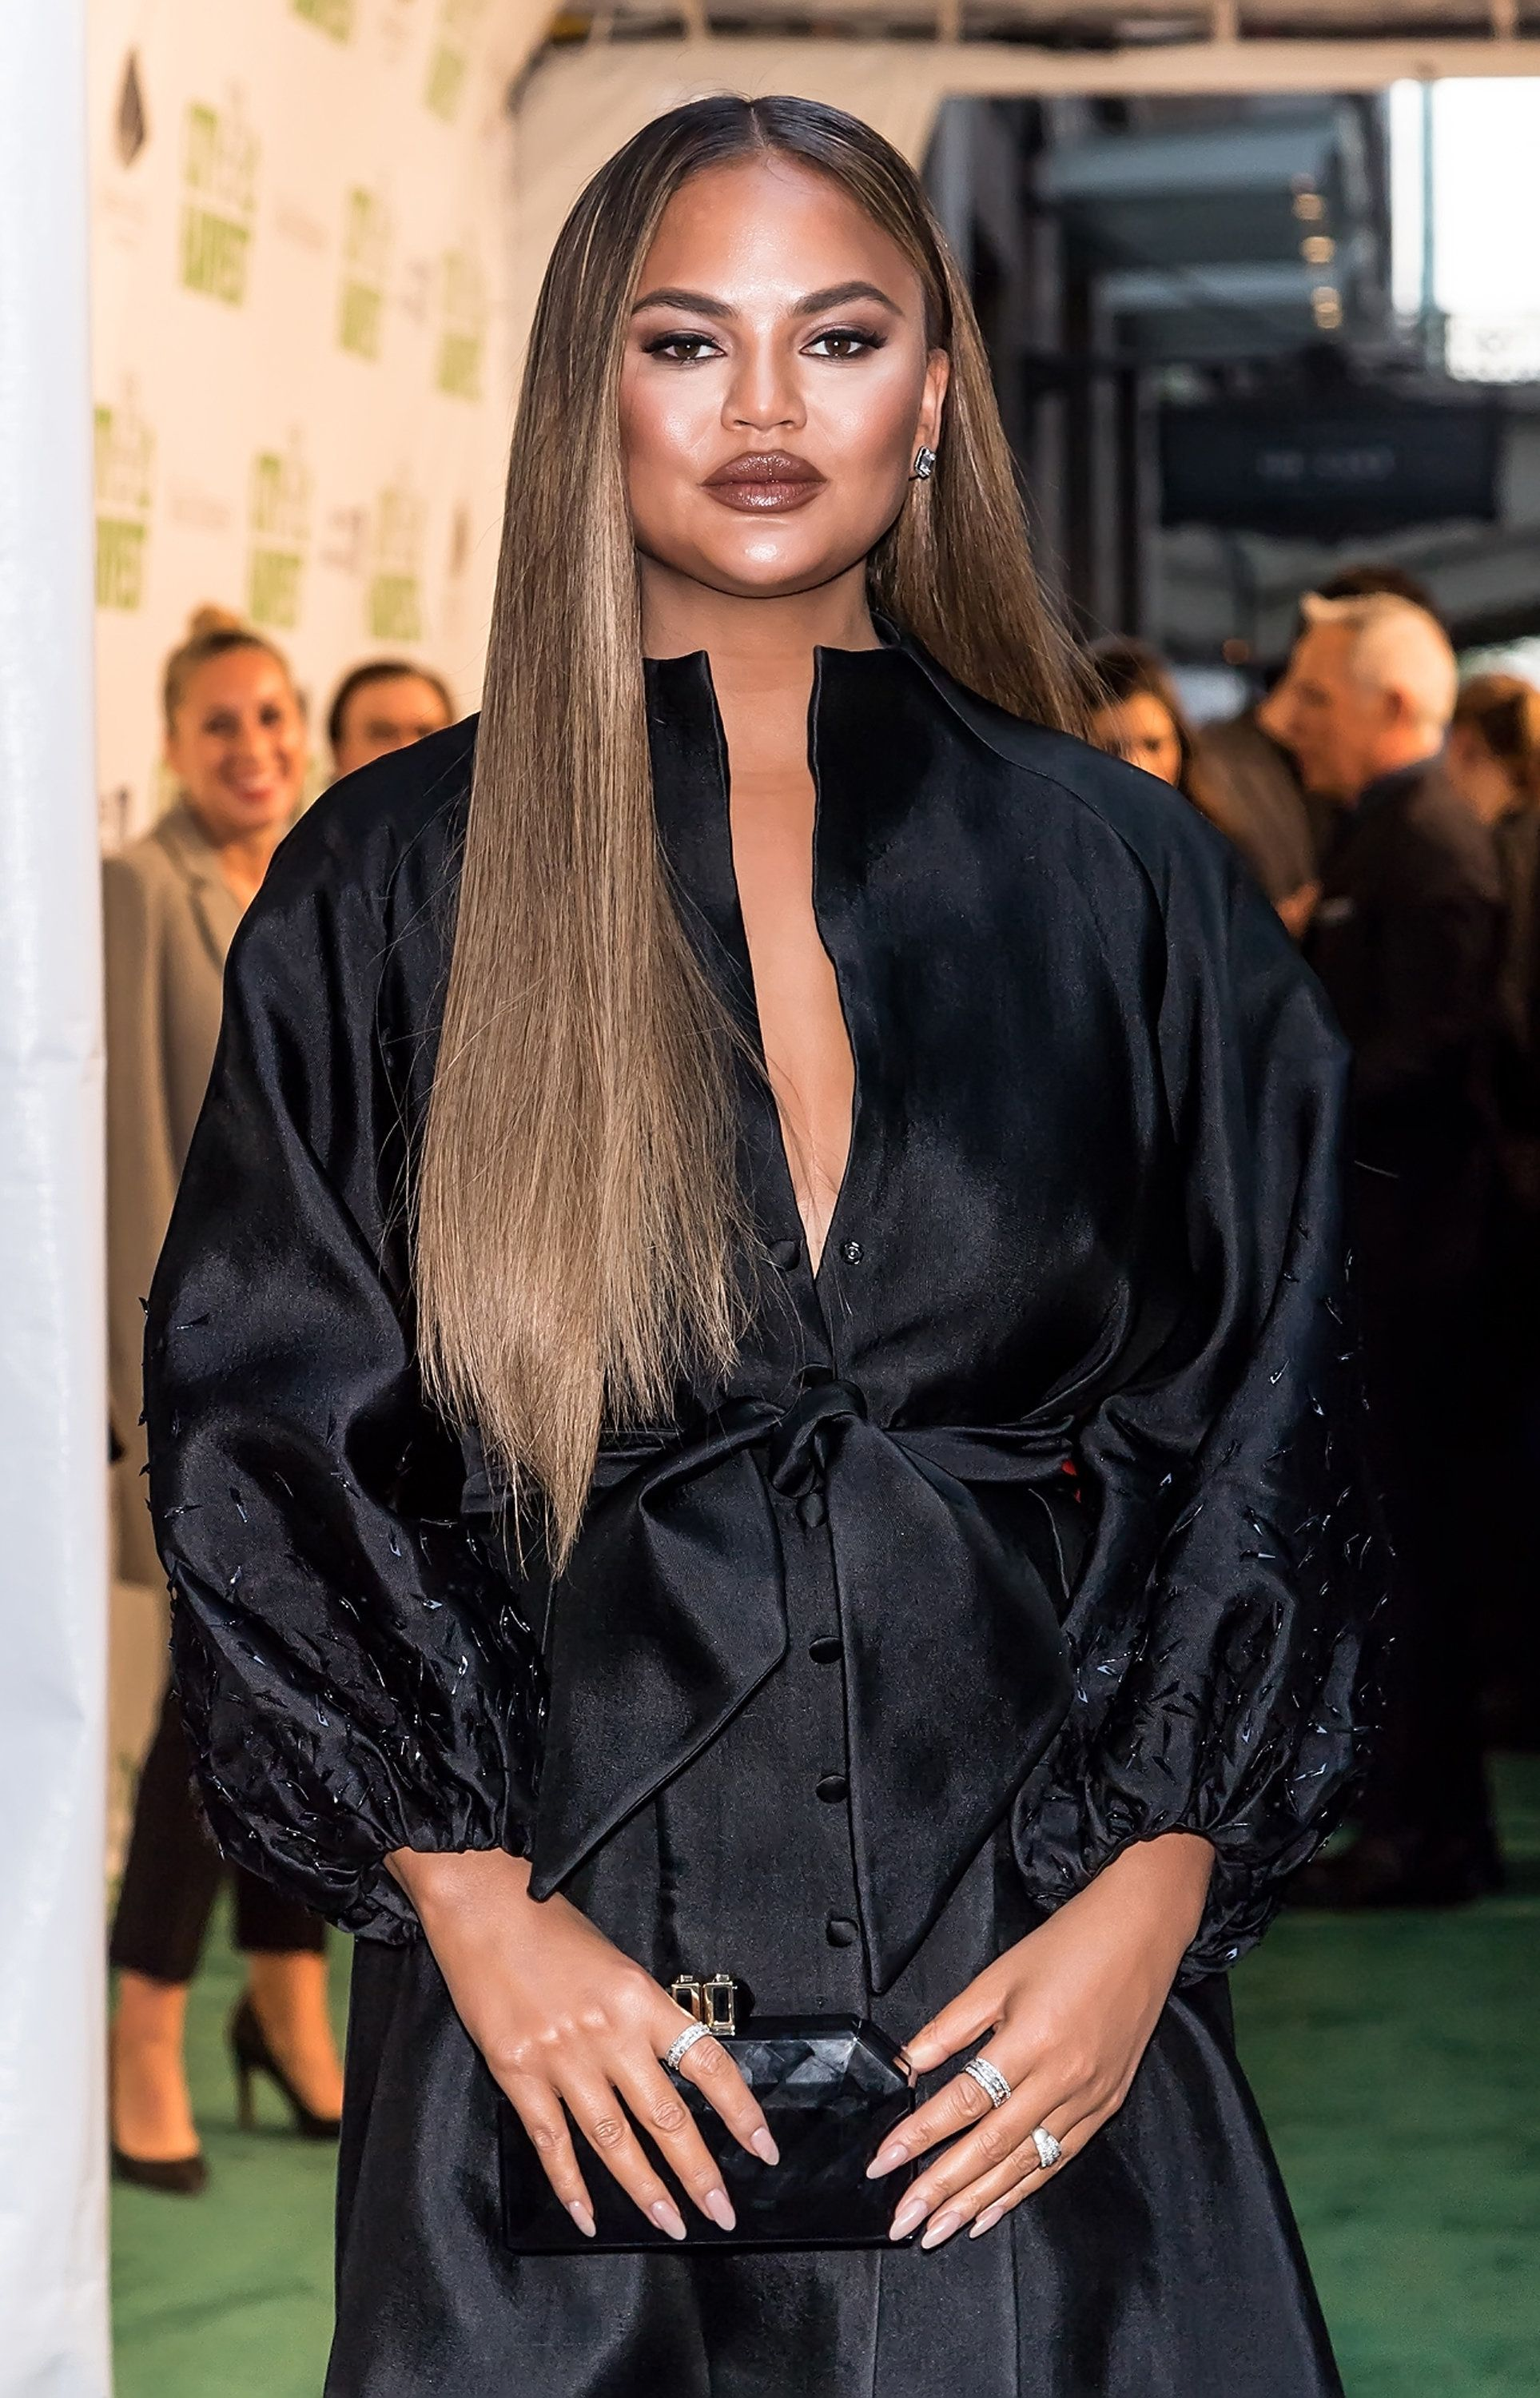 NEW YORK, NY - APRIL 30:  Model Chrissy Teigen is seen arriving to City Harvest: The 2019 Gala at Cipriani 42nd Street on April 30, 2019 in New York City.  (Photo by Gilbert Carrasquillo/GC Images)